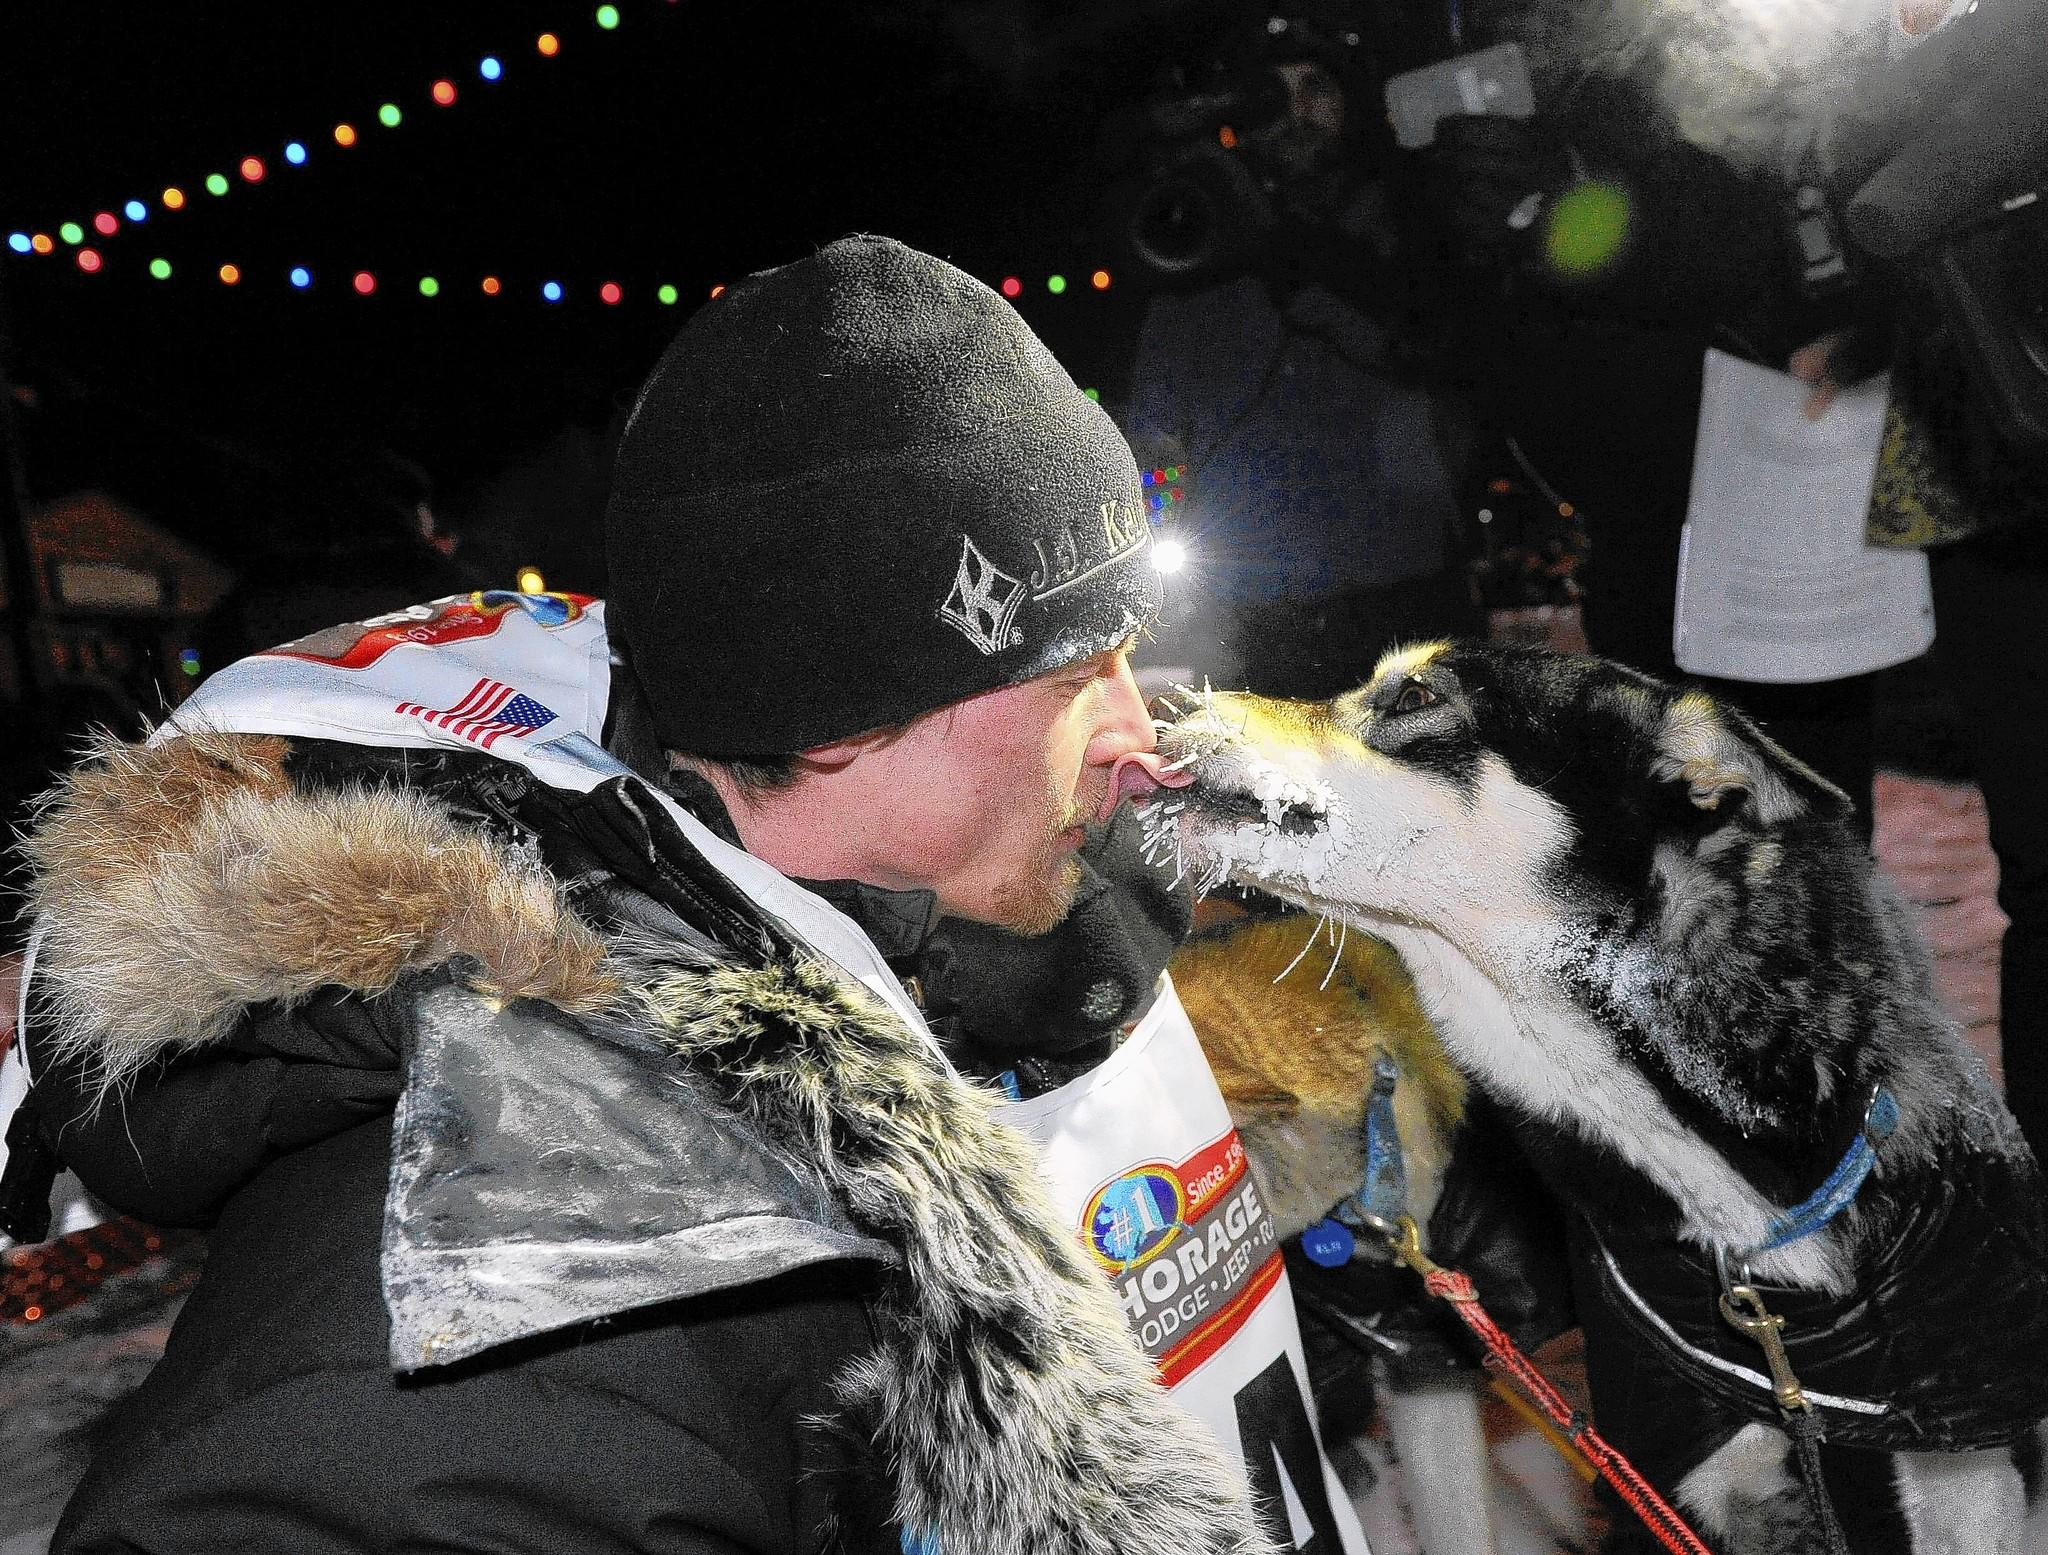 Dallas Seavey gets a kiss from one of his dogs after crossing under the burled arch in Nome, Alaska to win the 2014 Iditarod Trail Sled Dog Race on Tuesday, March 11, 2014.